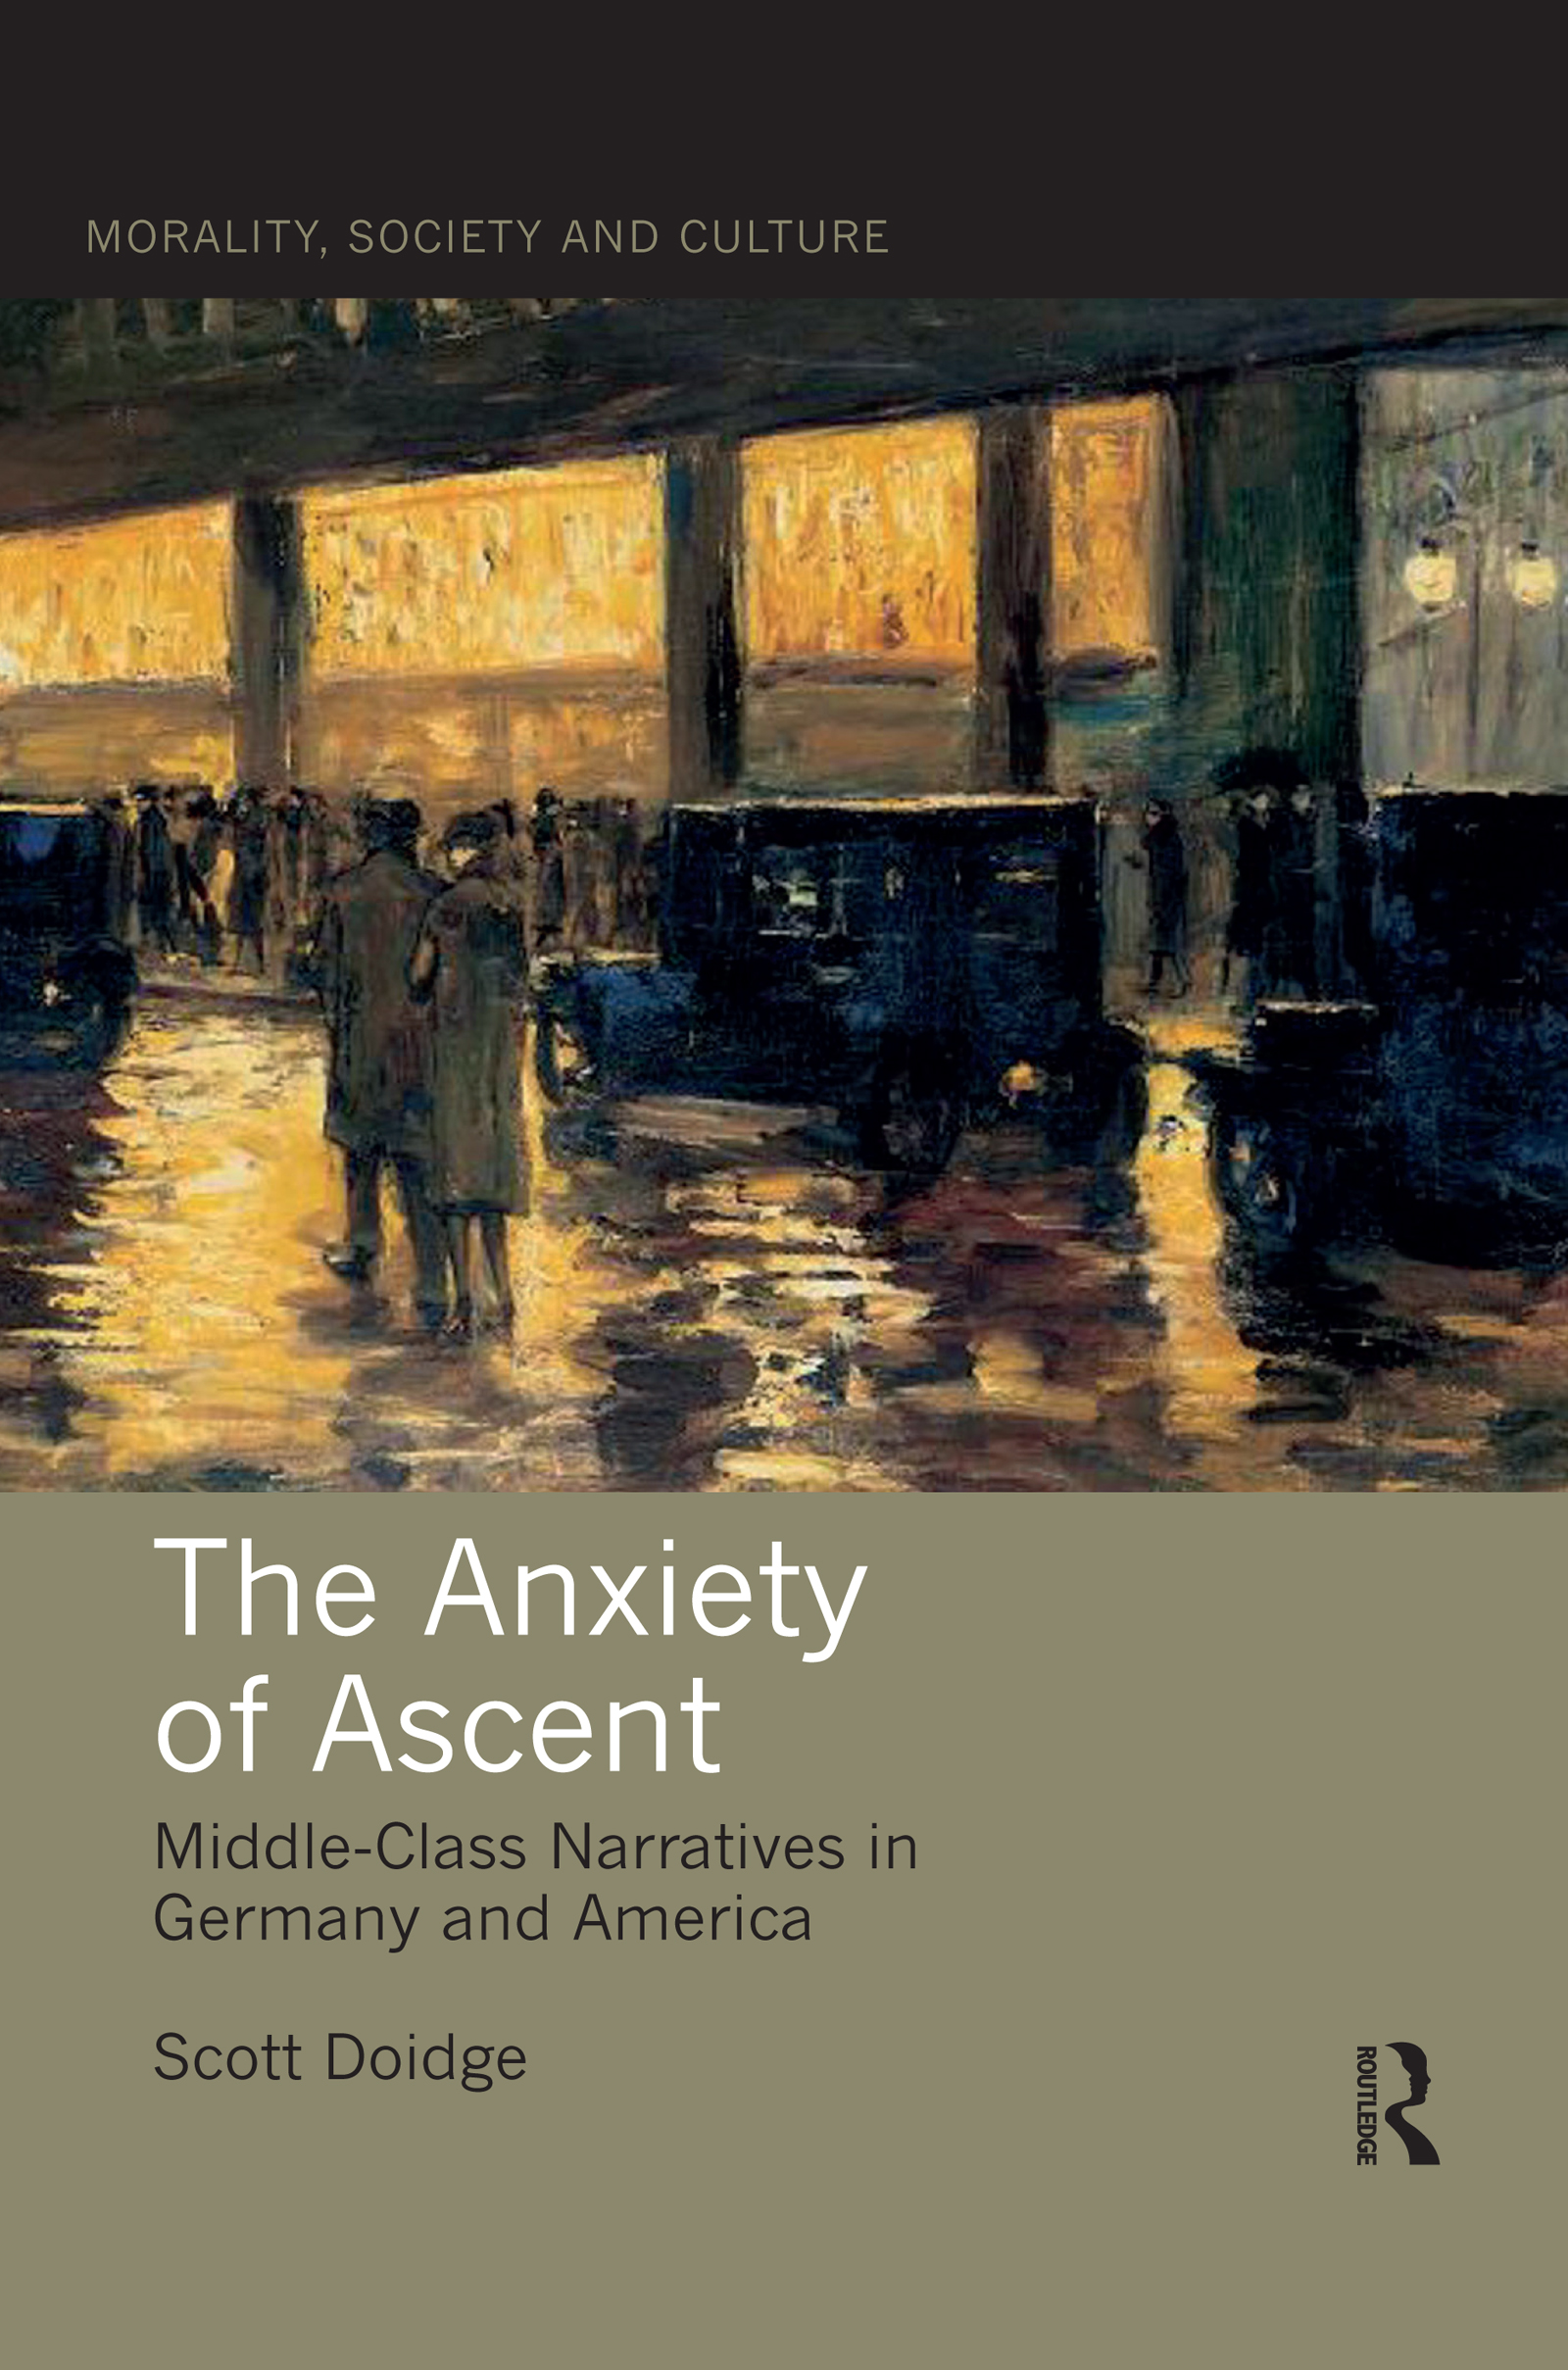 The Anxiety of Ascent